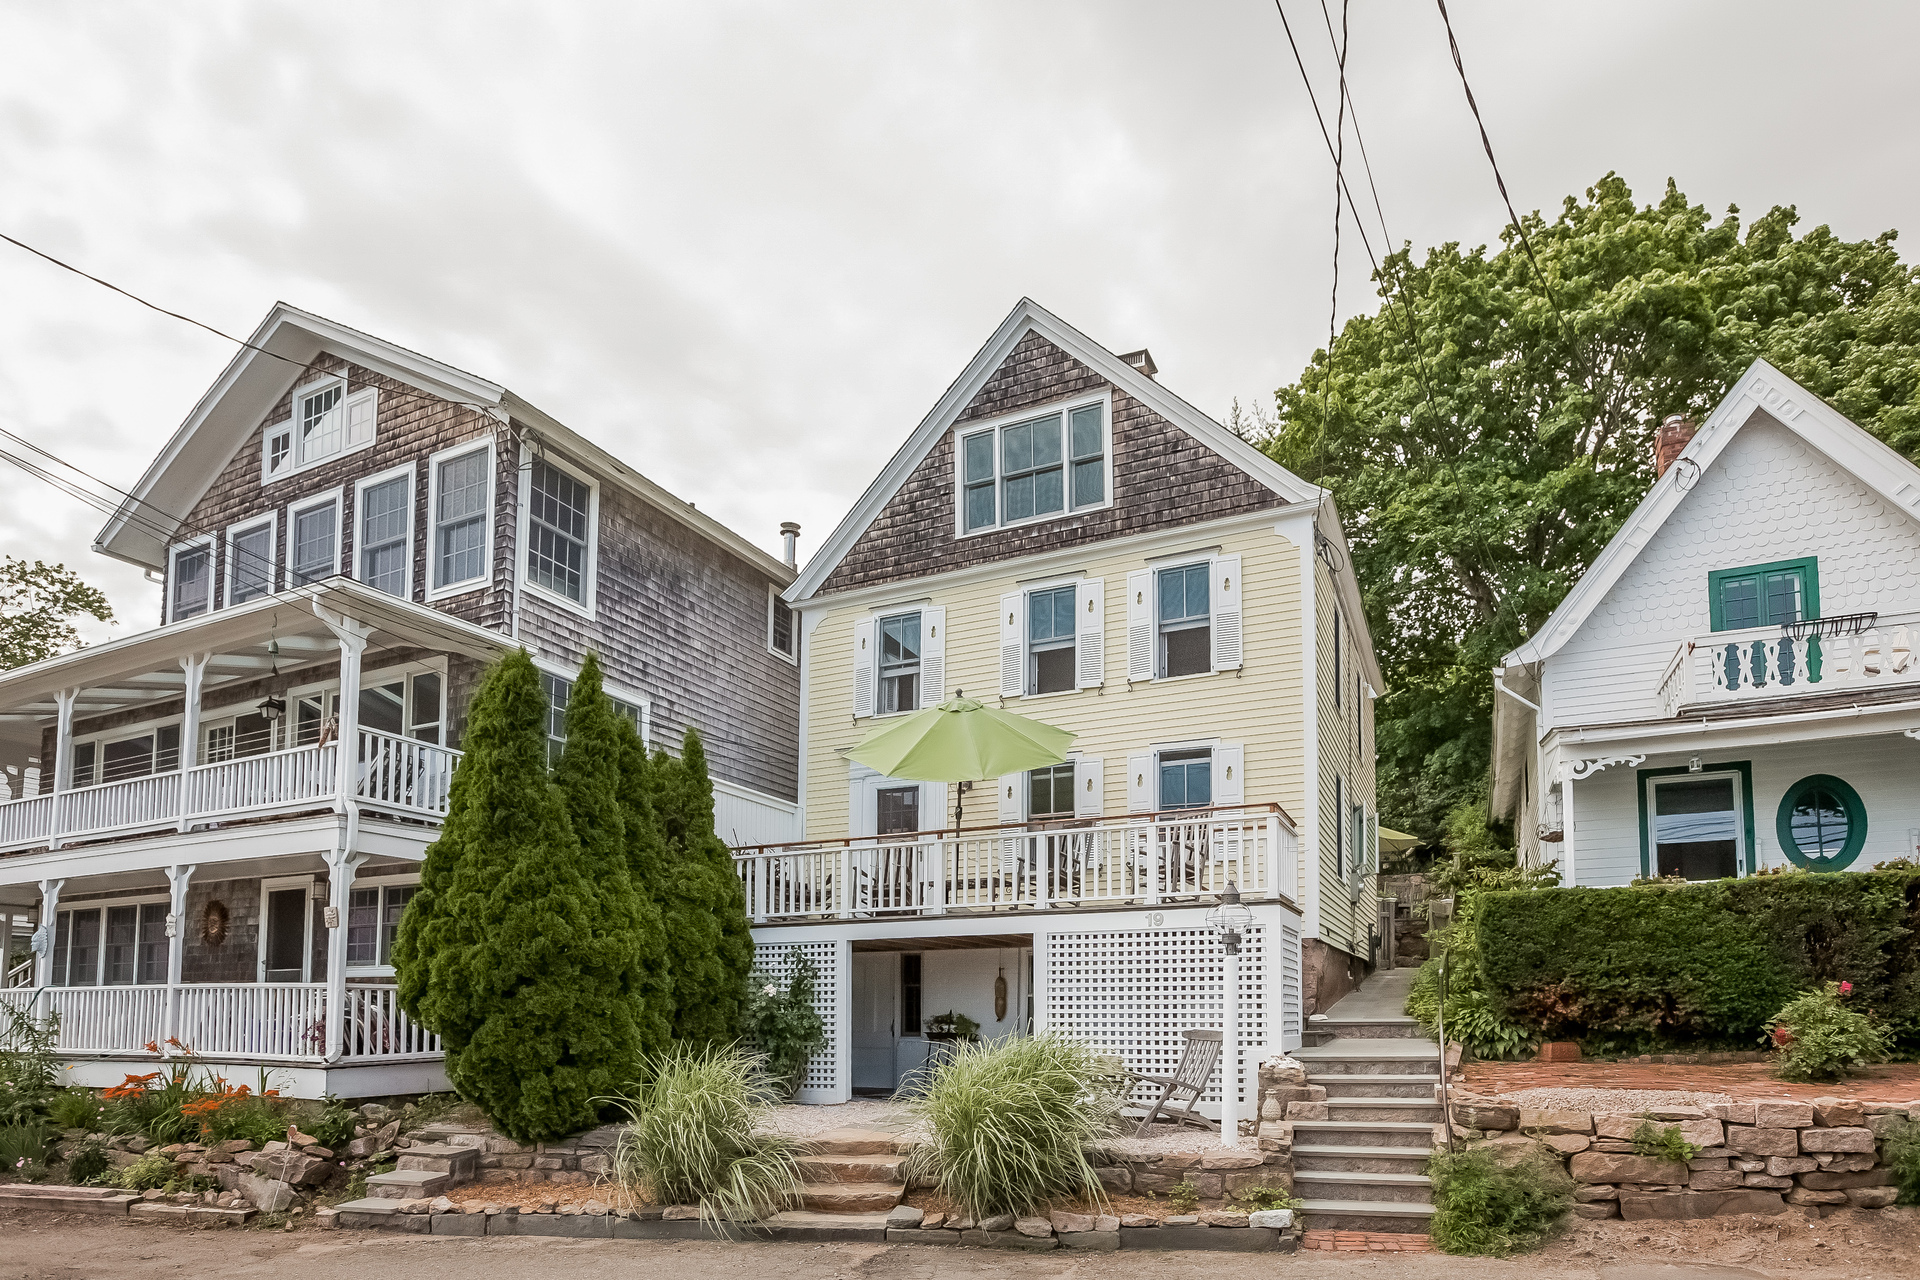 Single Family Home for Sale at 19 Halls Point Rd Branford, Connecticut 06405 United States